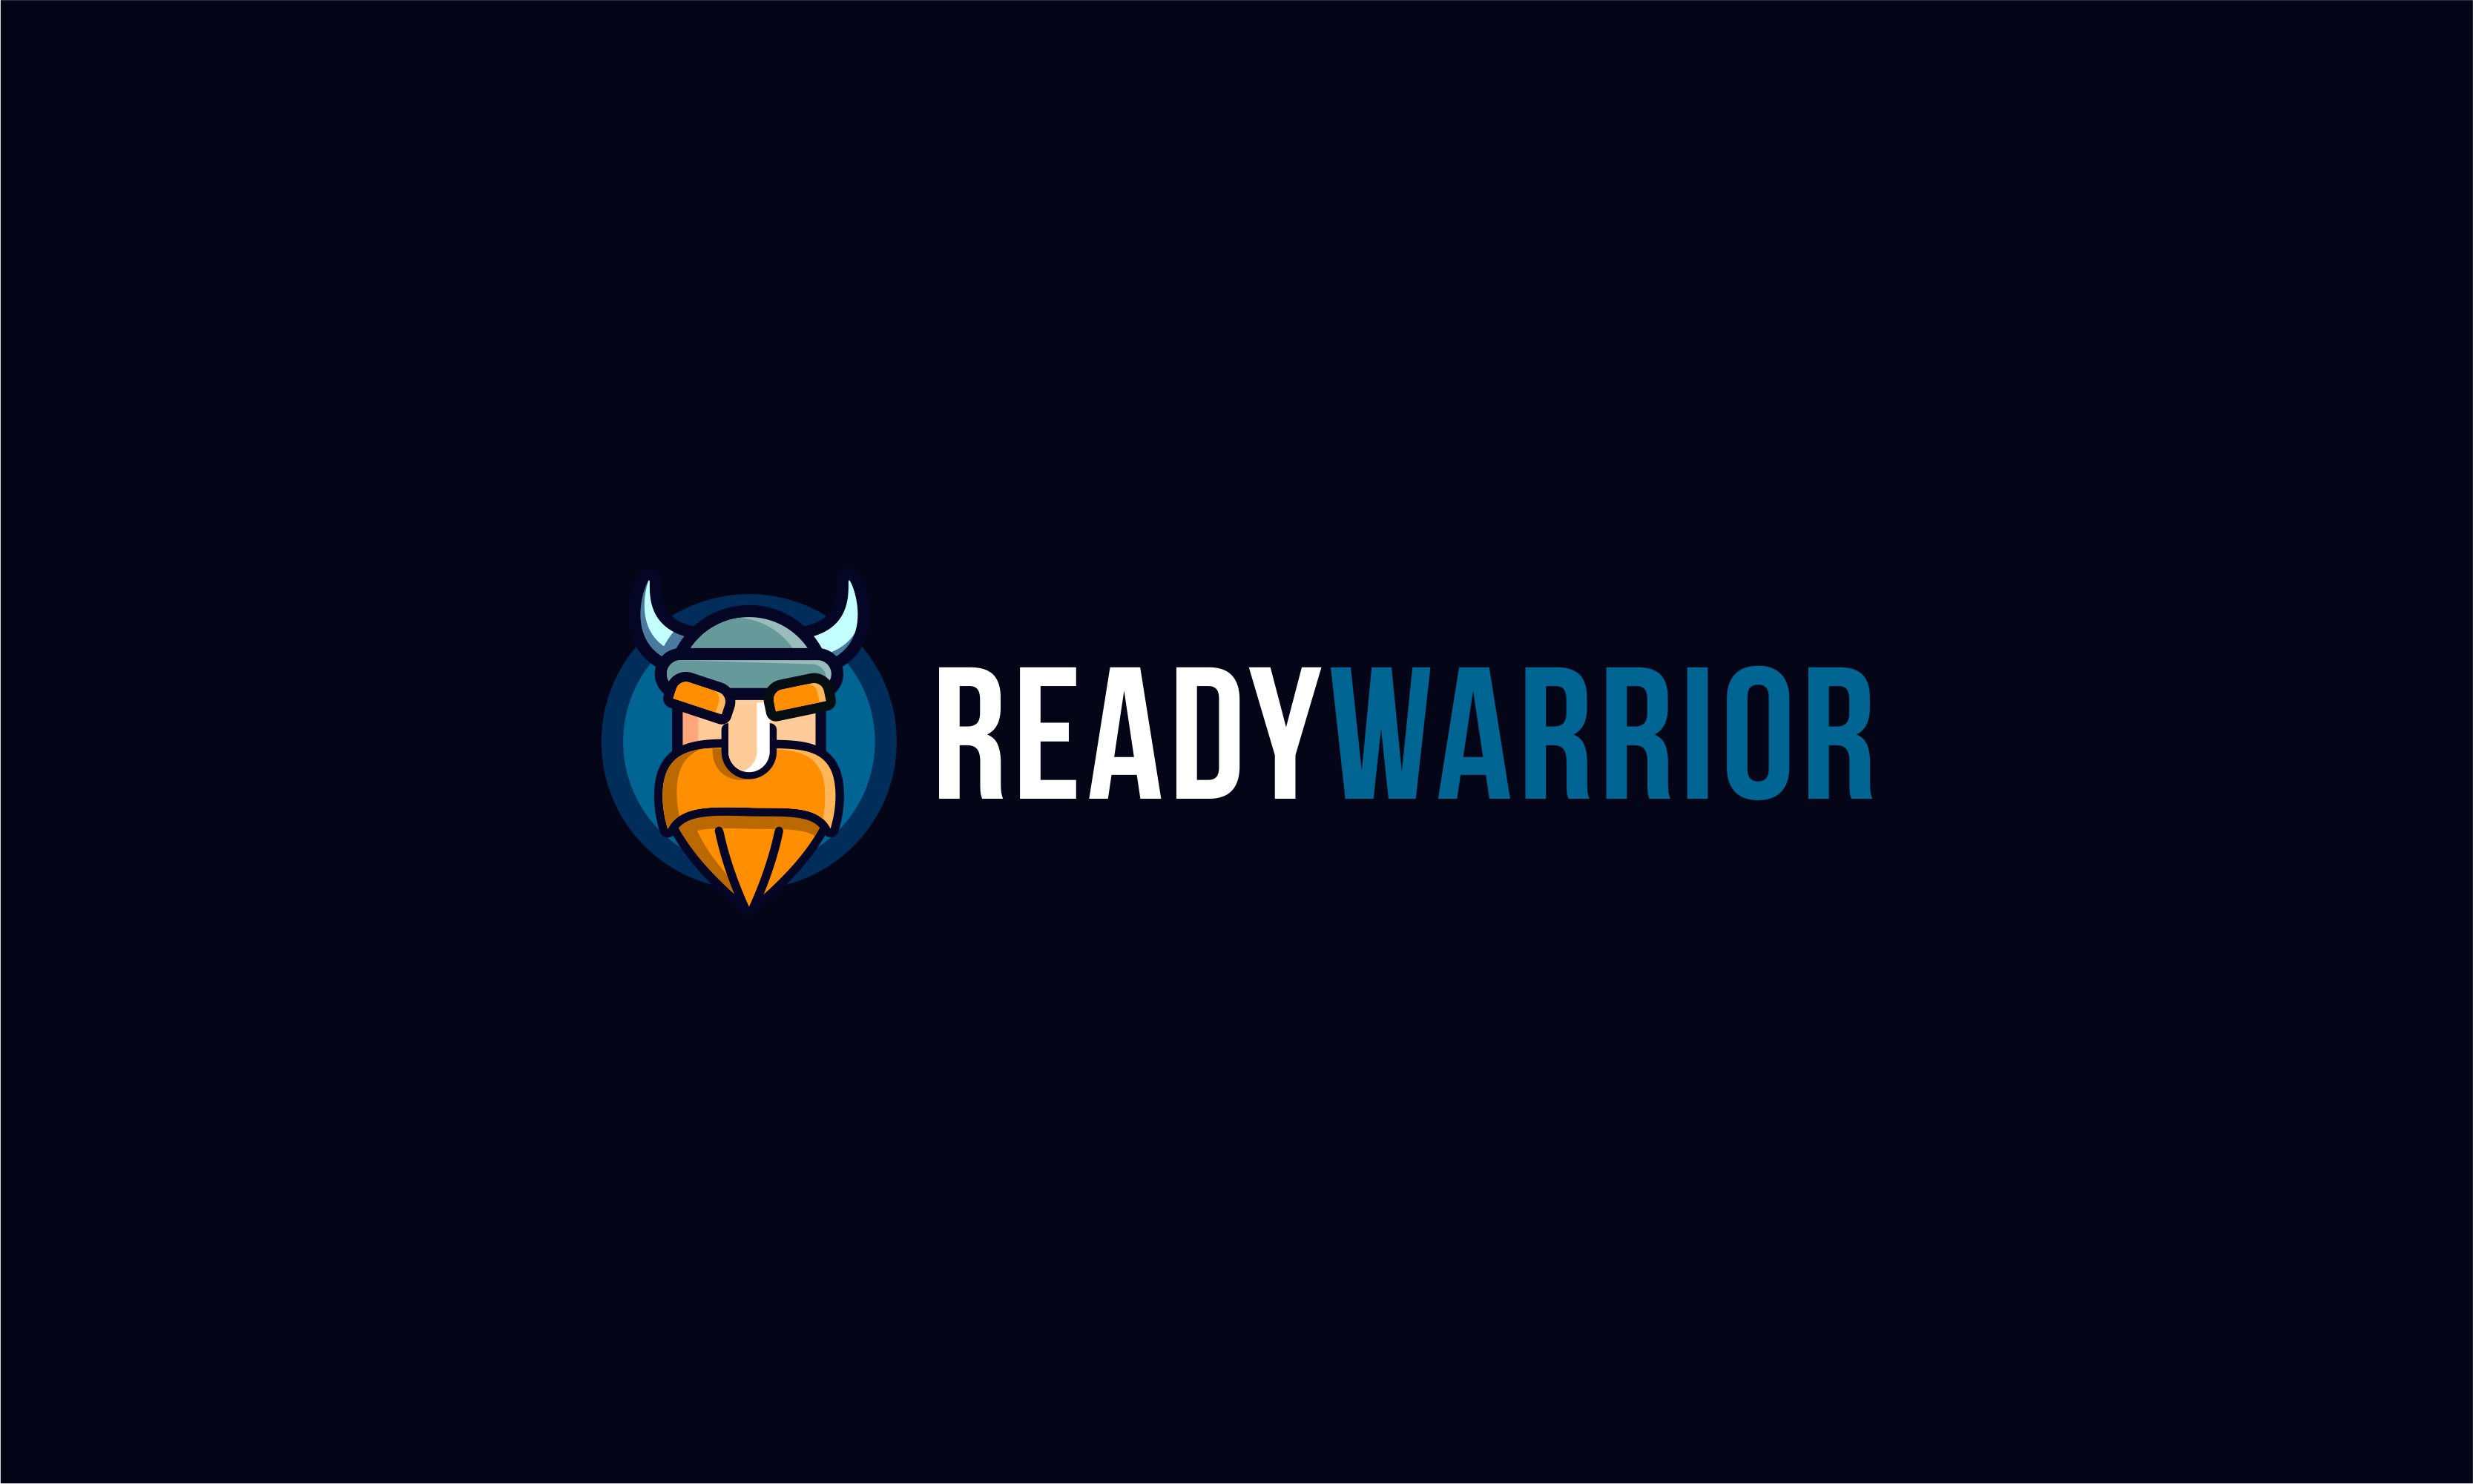 Readywarrior